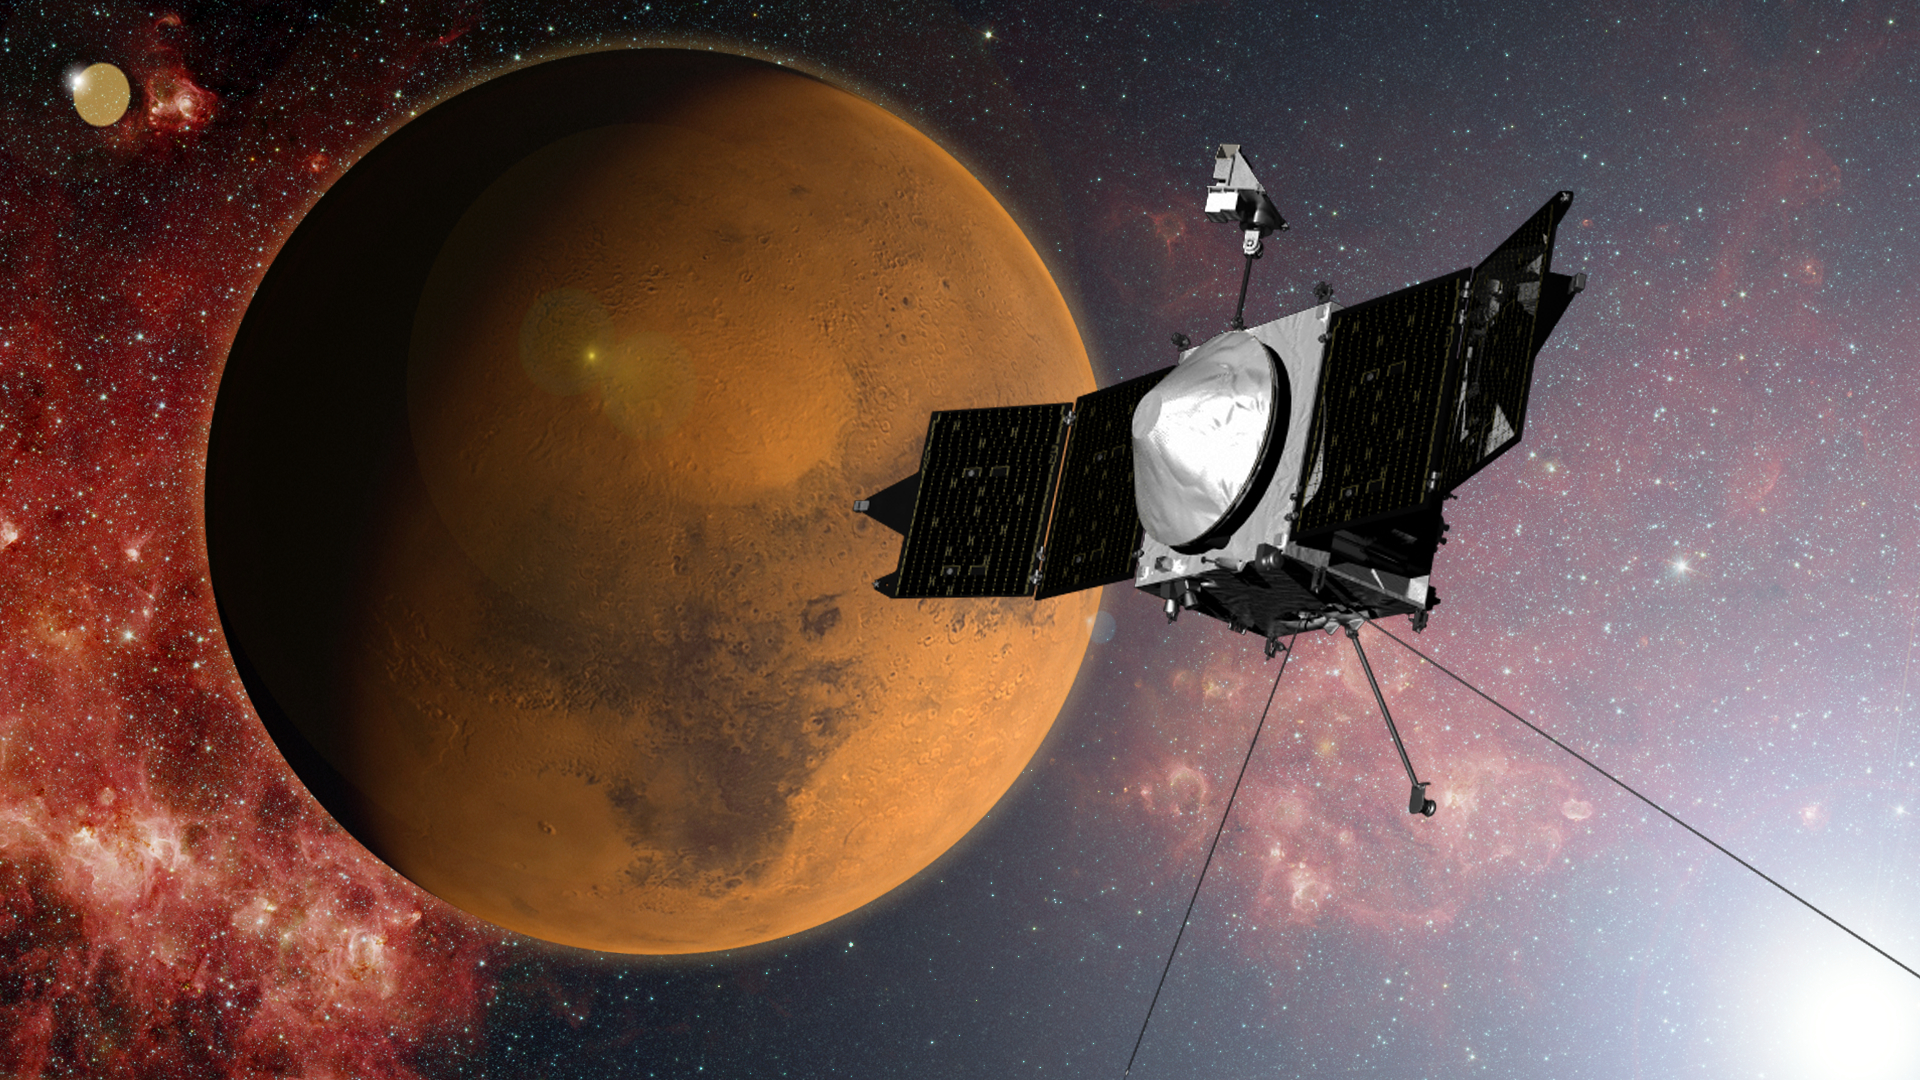 NASA's MAVEN spacecraft is quickly approaching Mars on a mission to study its upper atmosphere.